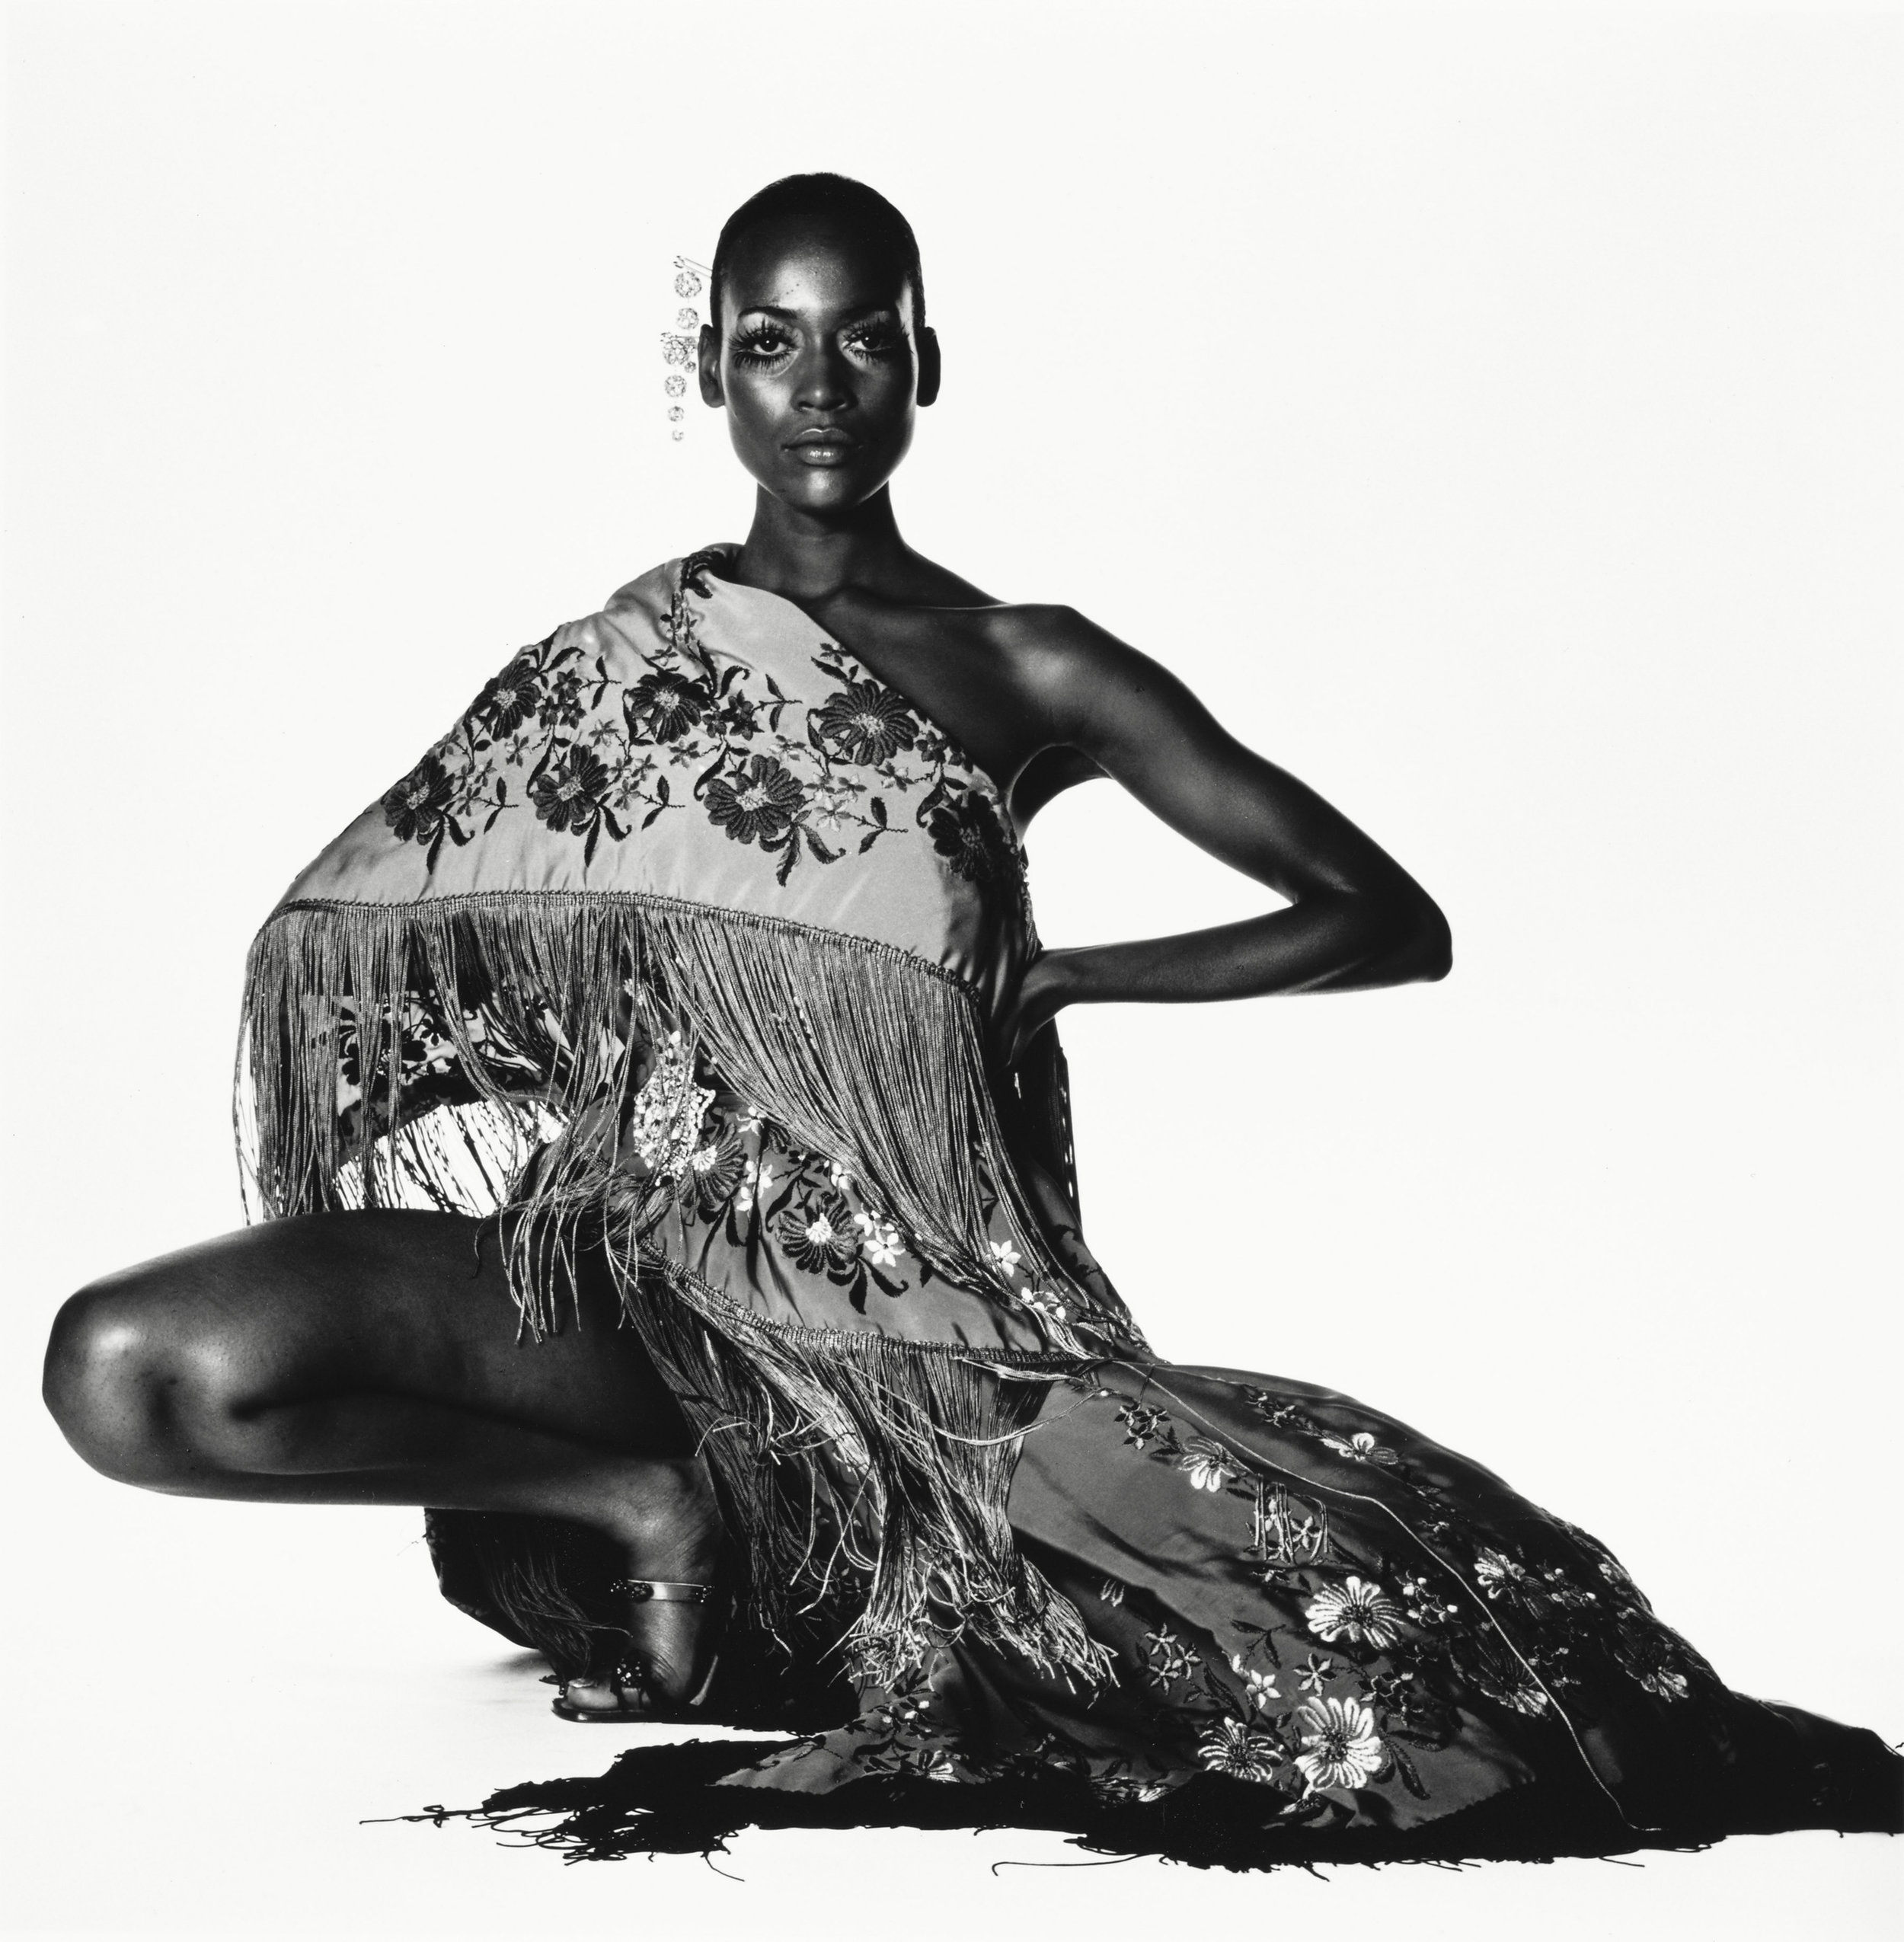 Irving Penn (American, 1917–2009)    Naomi Sims in Scarf , New York, ca. 1969    Gelatin silver print, 1985  10 ½ × 10 ⅜ in. (26.7 × 26.4 cm)  The Metropolitan Museum of Art, New York  Promised Gift of The Irving Penn Foundation  © The Irving Penn Foundation